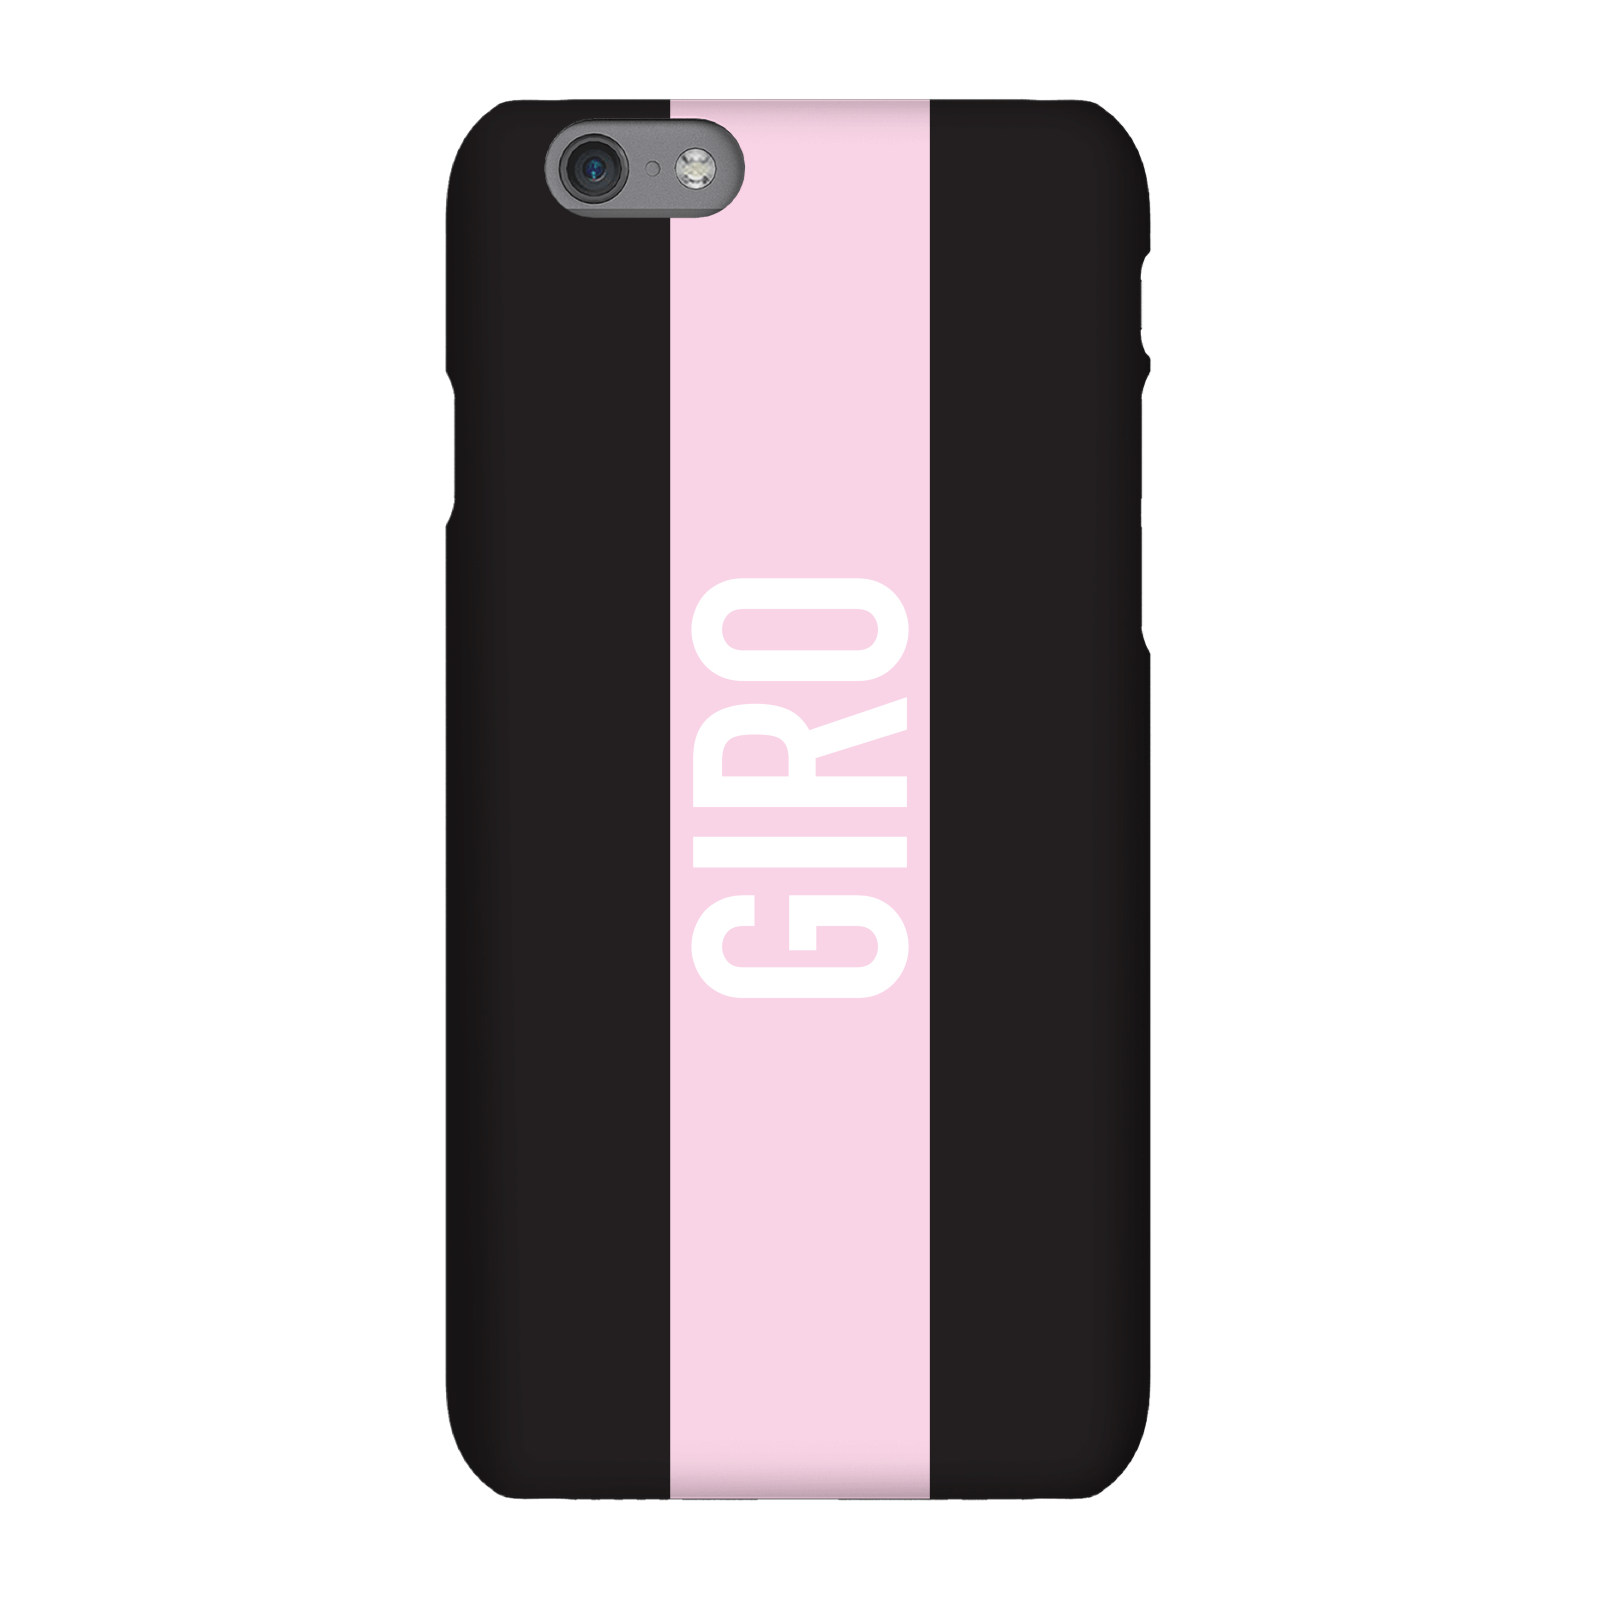 Giro Phone Case For Iphone And Android - Iphone 6s - Snap Case - Matte